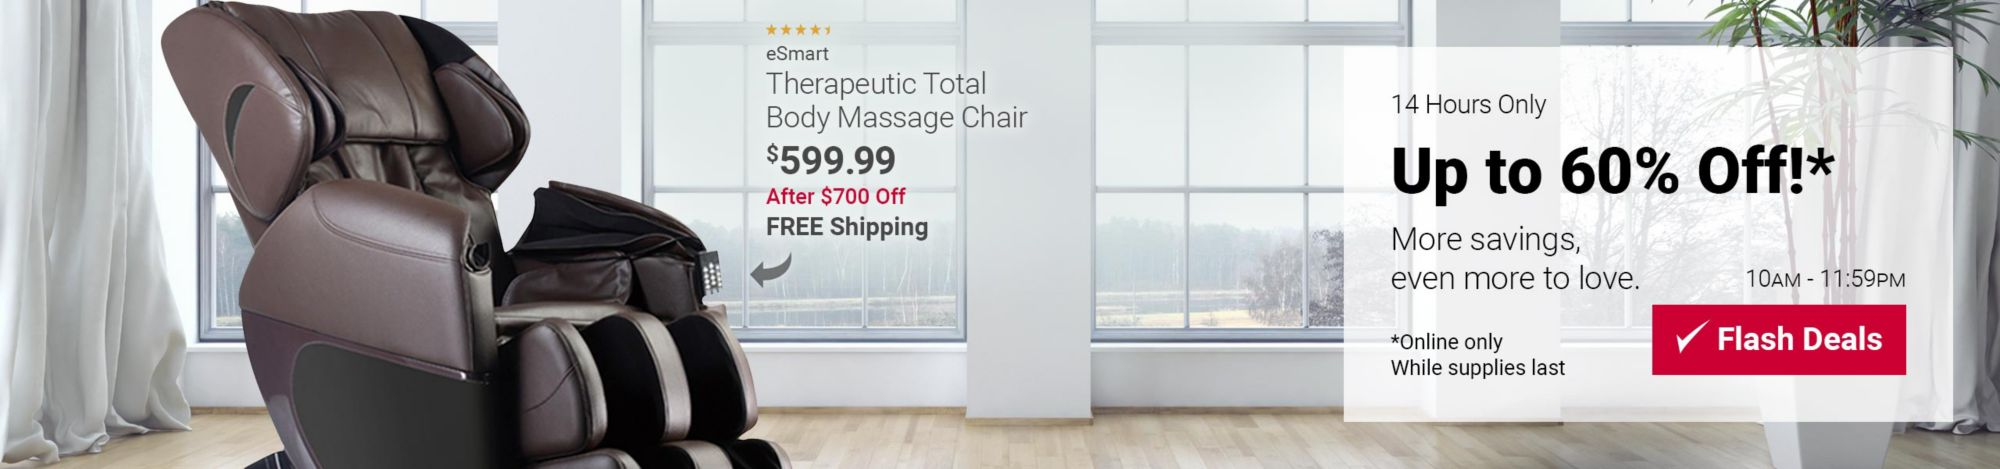 Flash deals up to 60% off! 10am to 11:59pm, today only. Featured item shows eSmart Therapeutic body massage chair for 599 dollars and 99 cents. Online only and with free shipping.